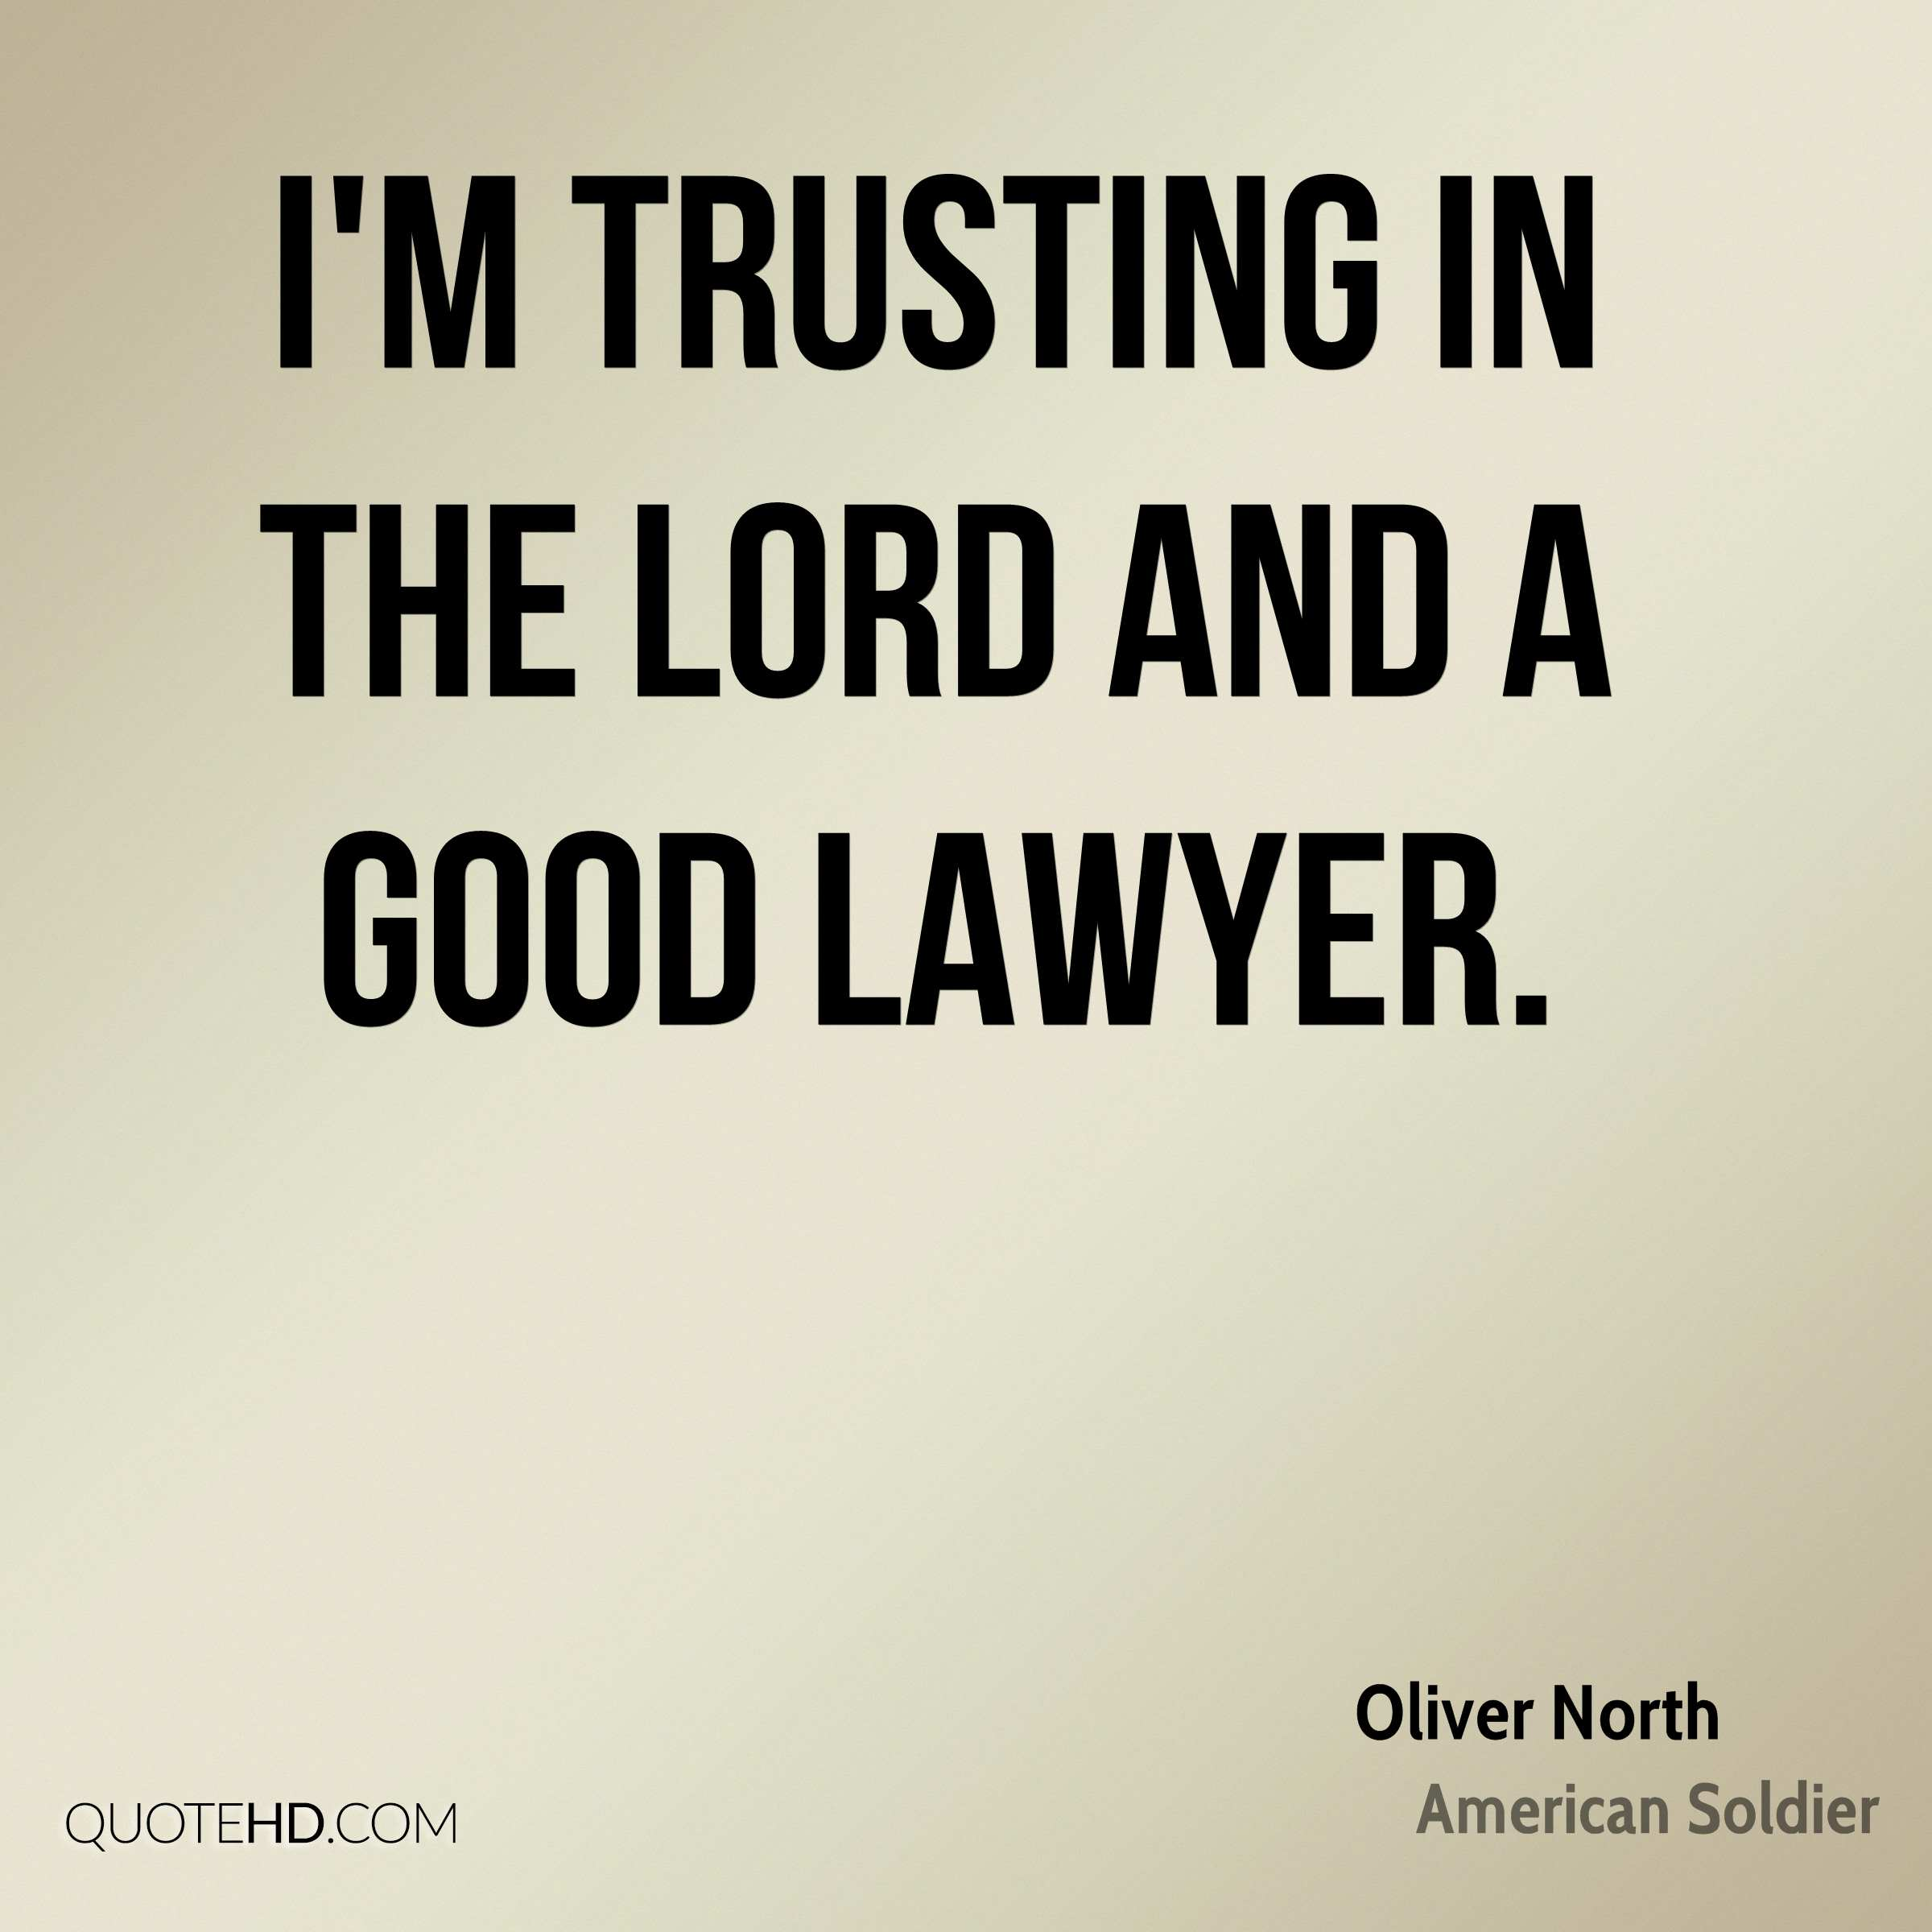 I'm trusting in the Lord and a good lawyer.